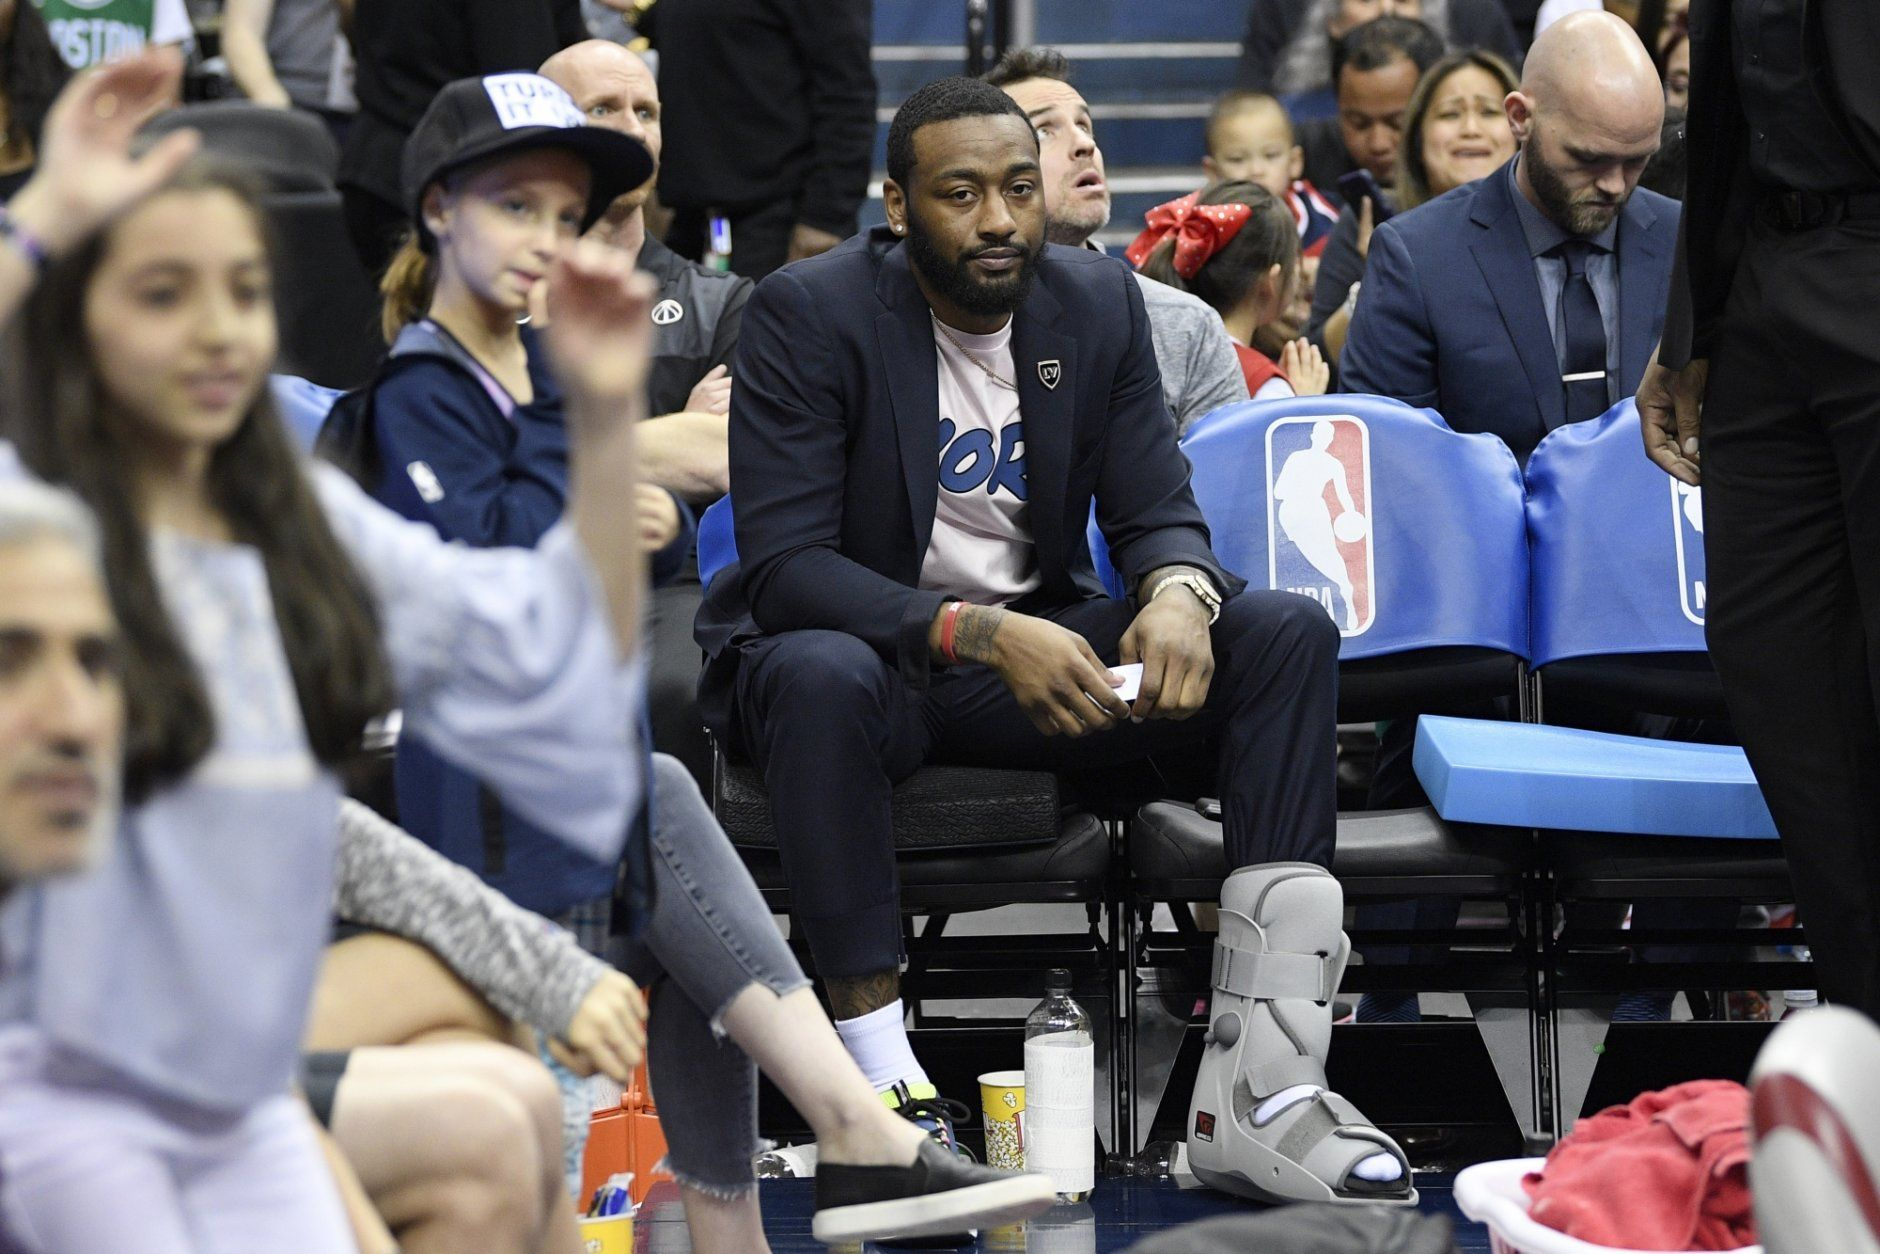 <p><strong>Will John Wall ever be John Wall again?</strong></p> <p>This has been a pleasantly surprising (if not competitive) Wizards season, with potential future mainstays like Dāvis Bertāns and role players like Jordan McRae and Garrison Mathews emerging alongside promising rookie Rui Hachimura. But none of the above would have the kind of instant infusion of promise to Washington's future as the return of a healthy, fully operational John Wall. Beset by multiple surgeries, Wall last played a full season in 2016-17, but he's still not even 30. If he can return to his previous playmaking ways with a solid core around him and Bradley Beal, the Wizards could jump right back into the playoff mix next year. If not? That supermax extension could become an albatross that even masterful salary cap dodging can't overcome.</p>